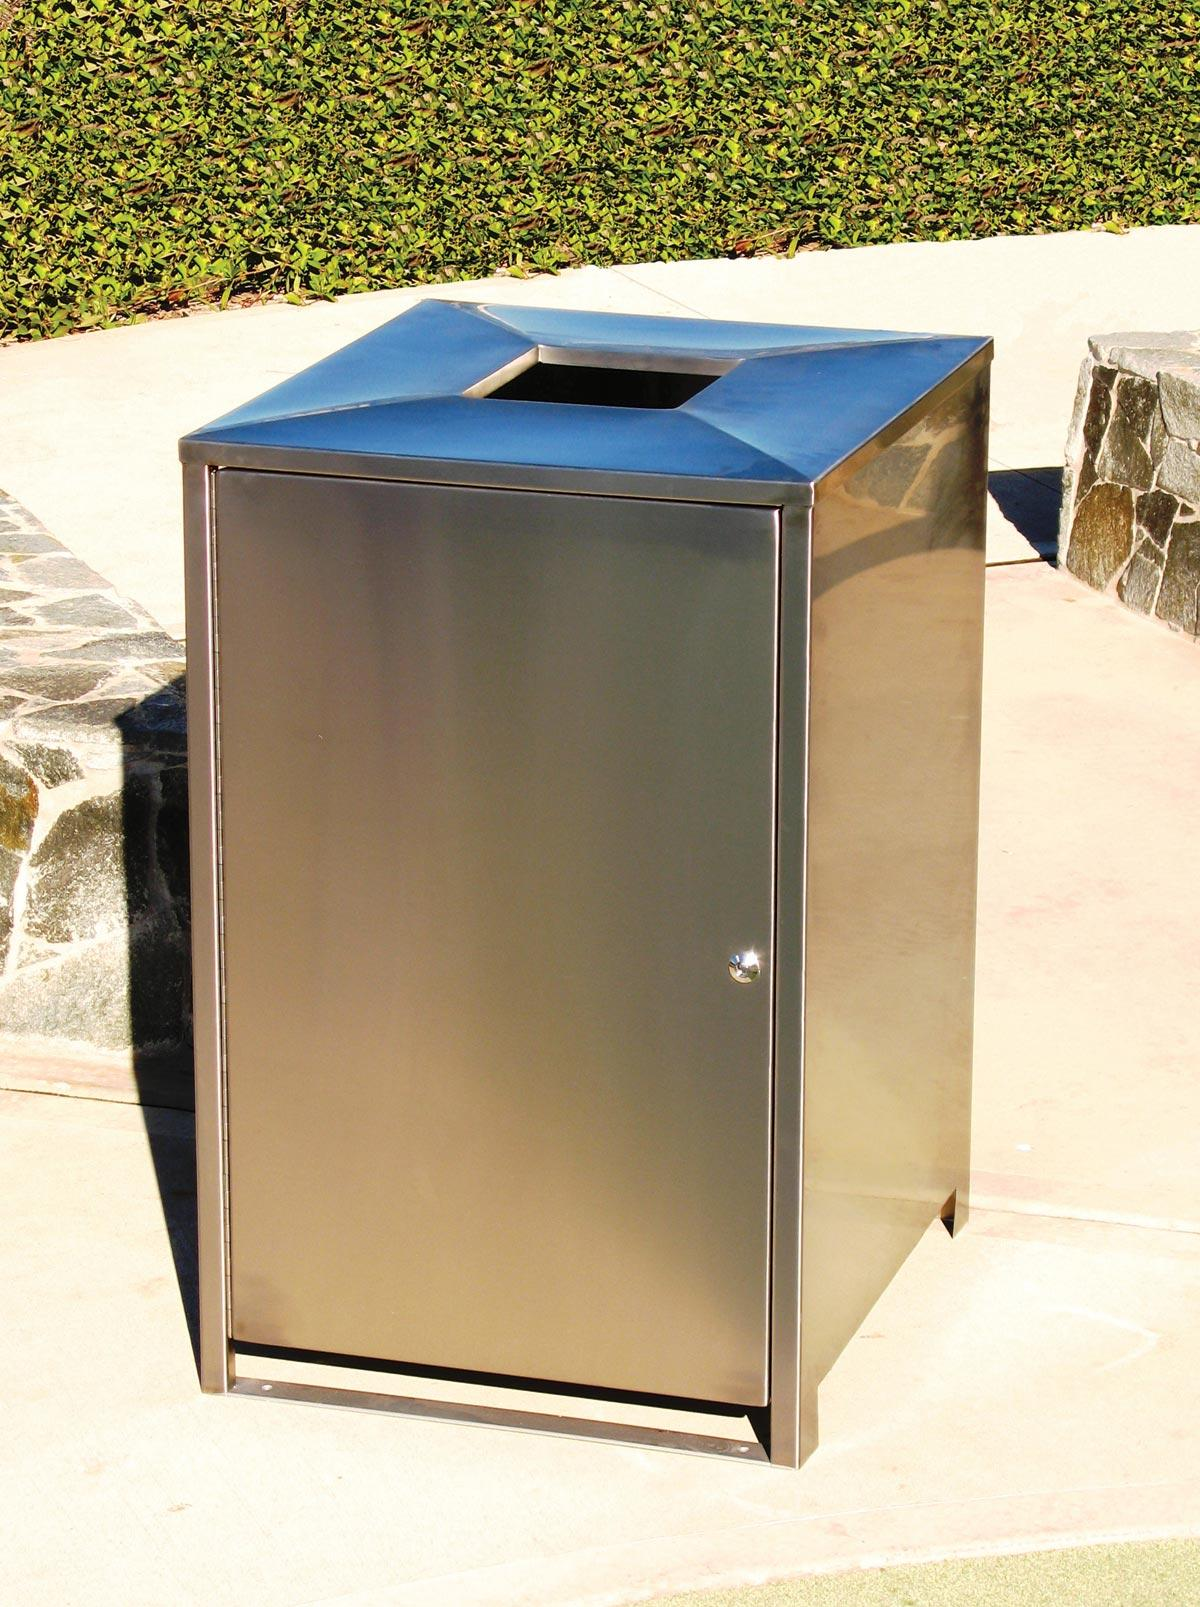 Sm1050 Bin Surround Stainless Steel Furniture For Public